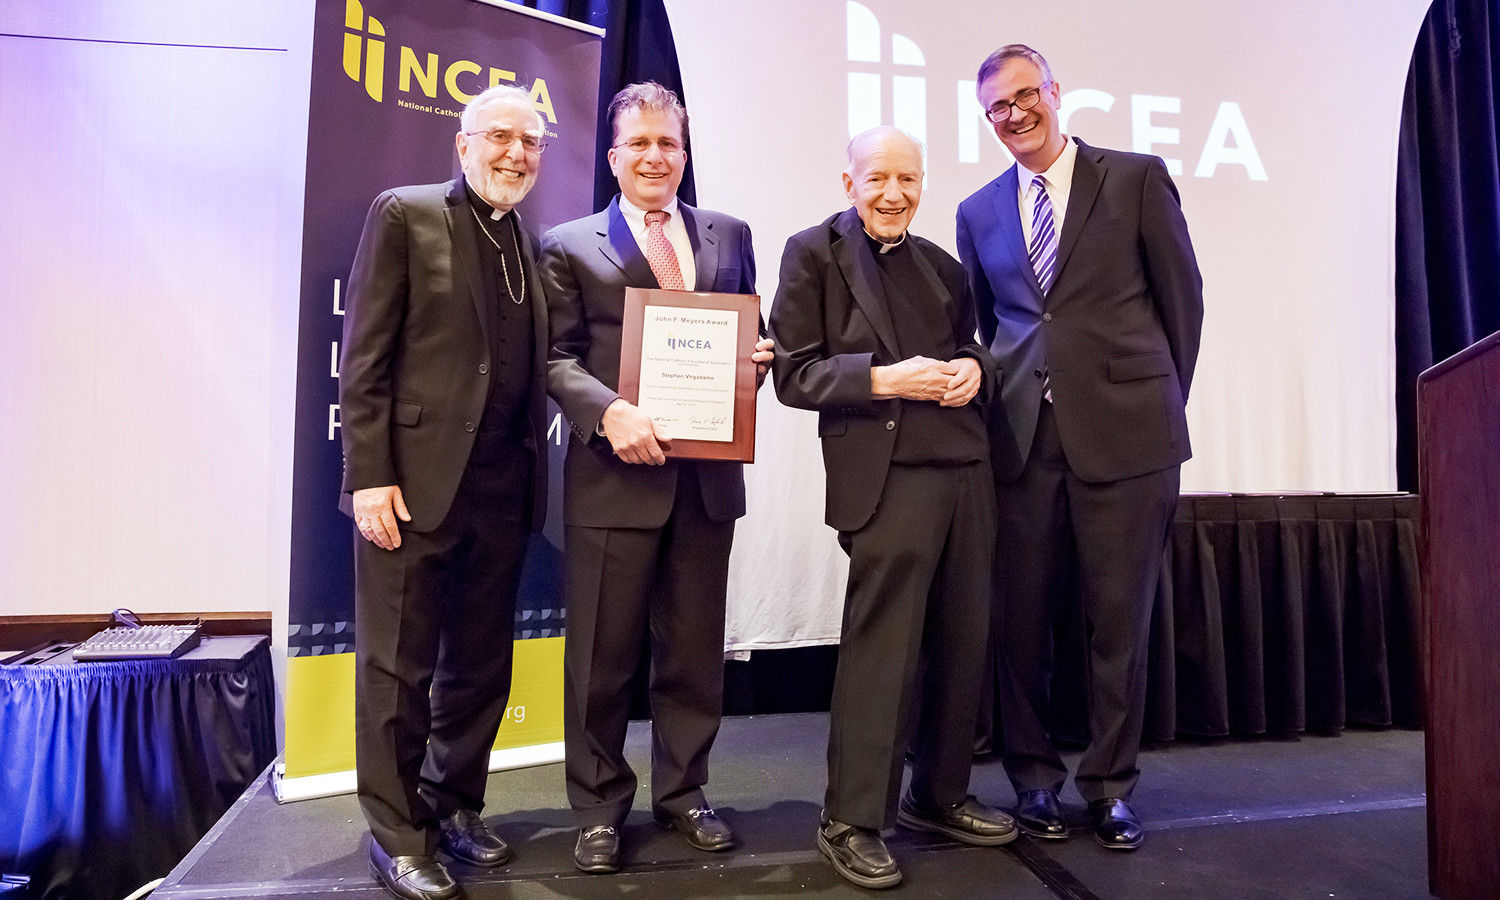 NCEA Board Chair Bishop Gerald Kicanas, far left; honoree Steven Virgadamo, associate superintendent for leadership formation for the archdiocese; Msgr. John F. Meyers, the namesake of Virgadamo's award; and NCEA President/CEO Dr. Thomas Burnford smile broadly after Virgadamo was recognized at an awards banquet April 2 at the National Catholic Educational Convention & Expo in Cincinnati.